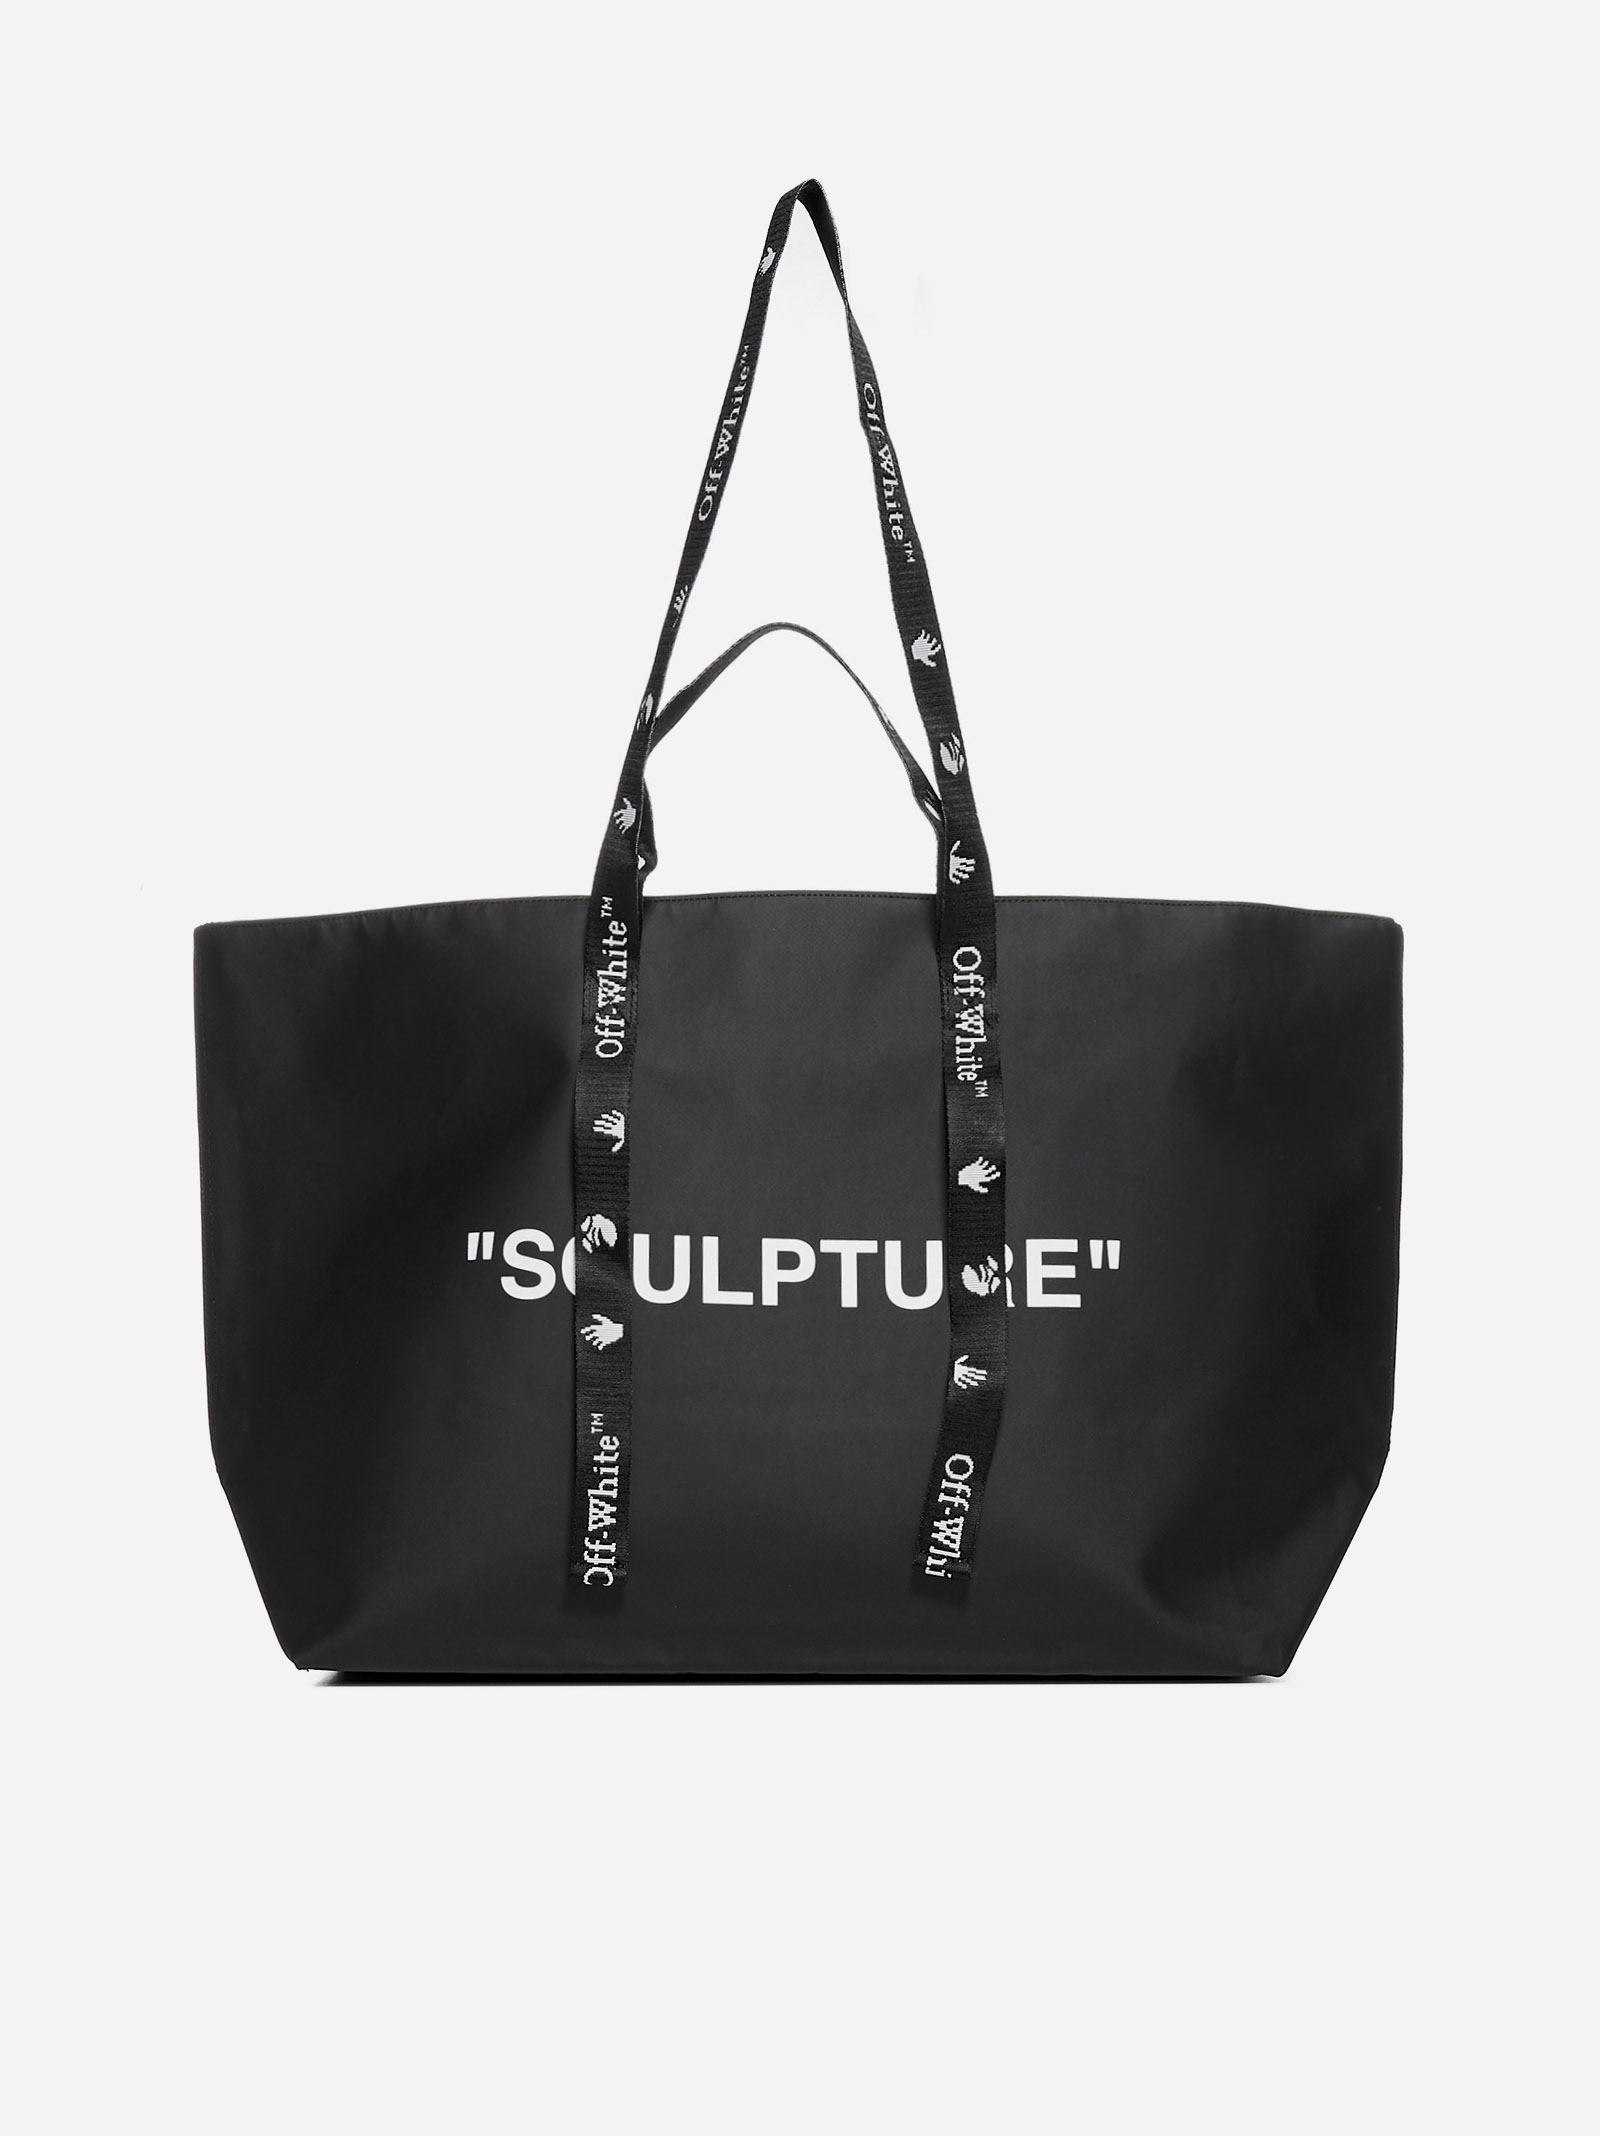 Off-White SCULPTURE NYLON COMMERCIAL TOTE BAG